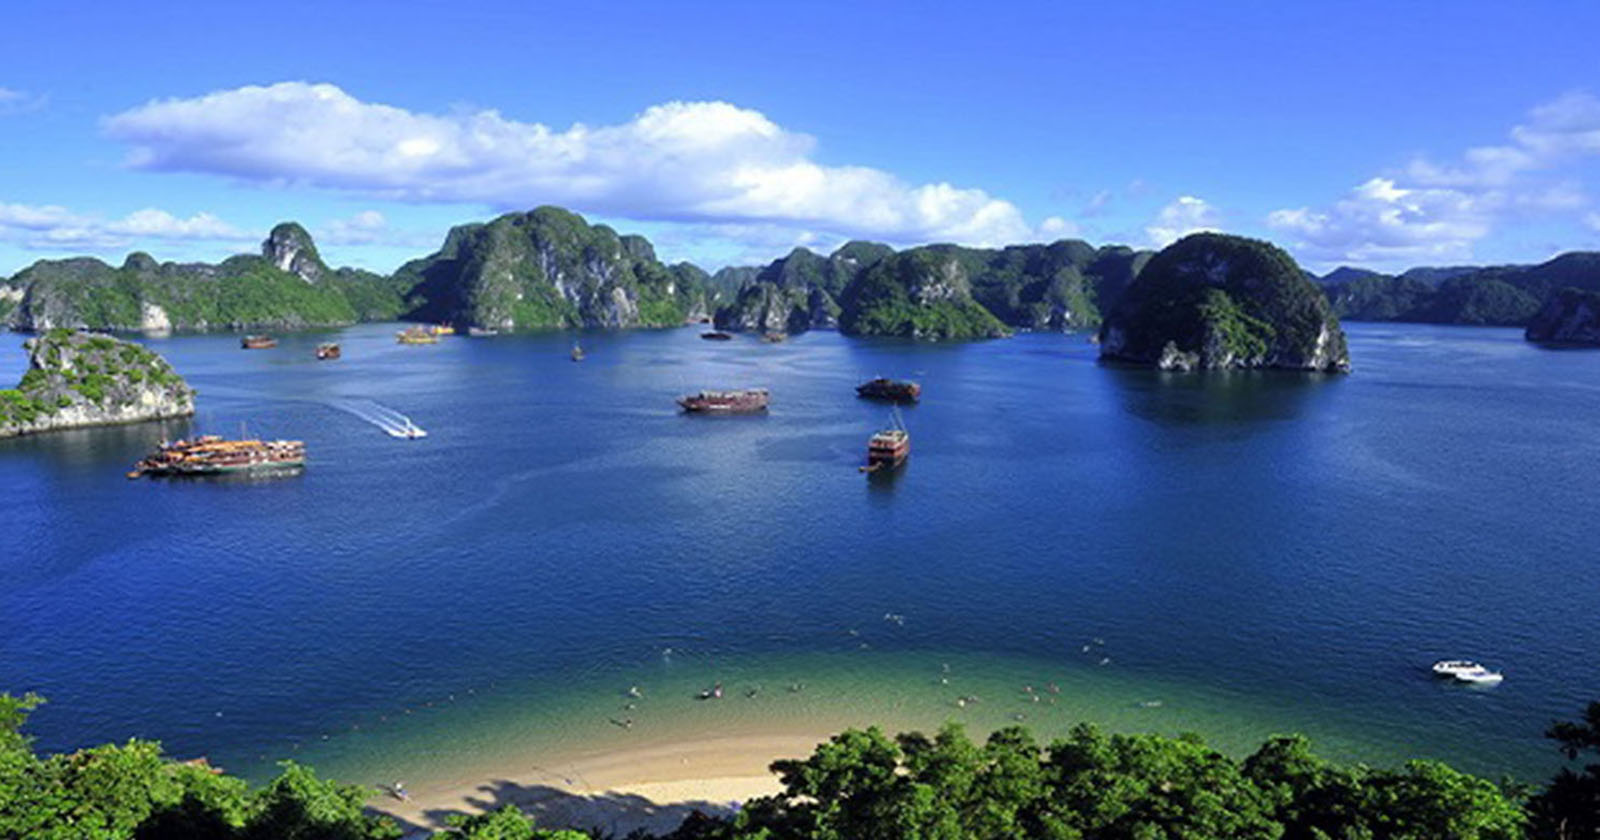 <div>Experience overnight on 5* Cruise in Halong Bay - A site of New7Wonders</div>